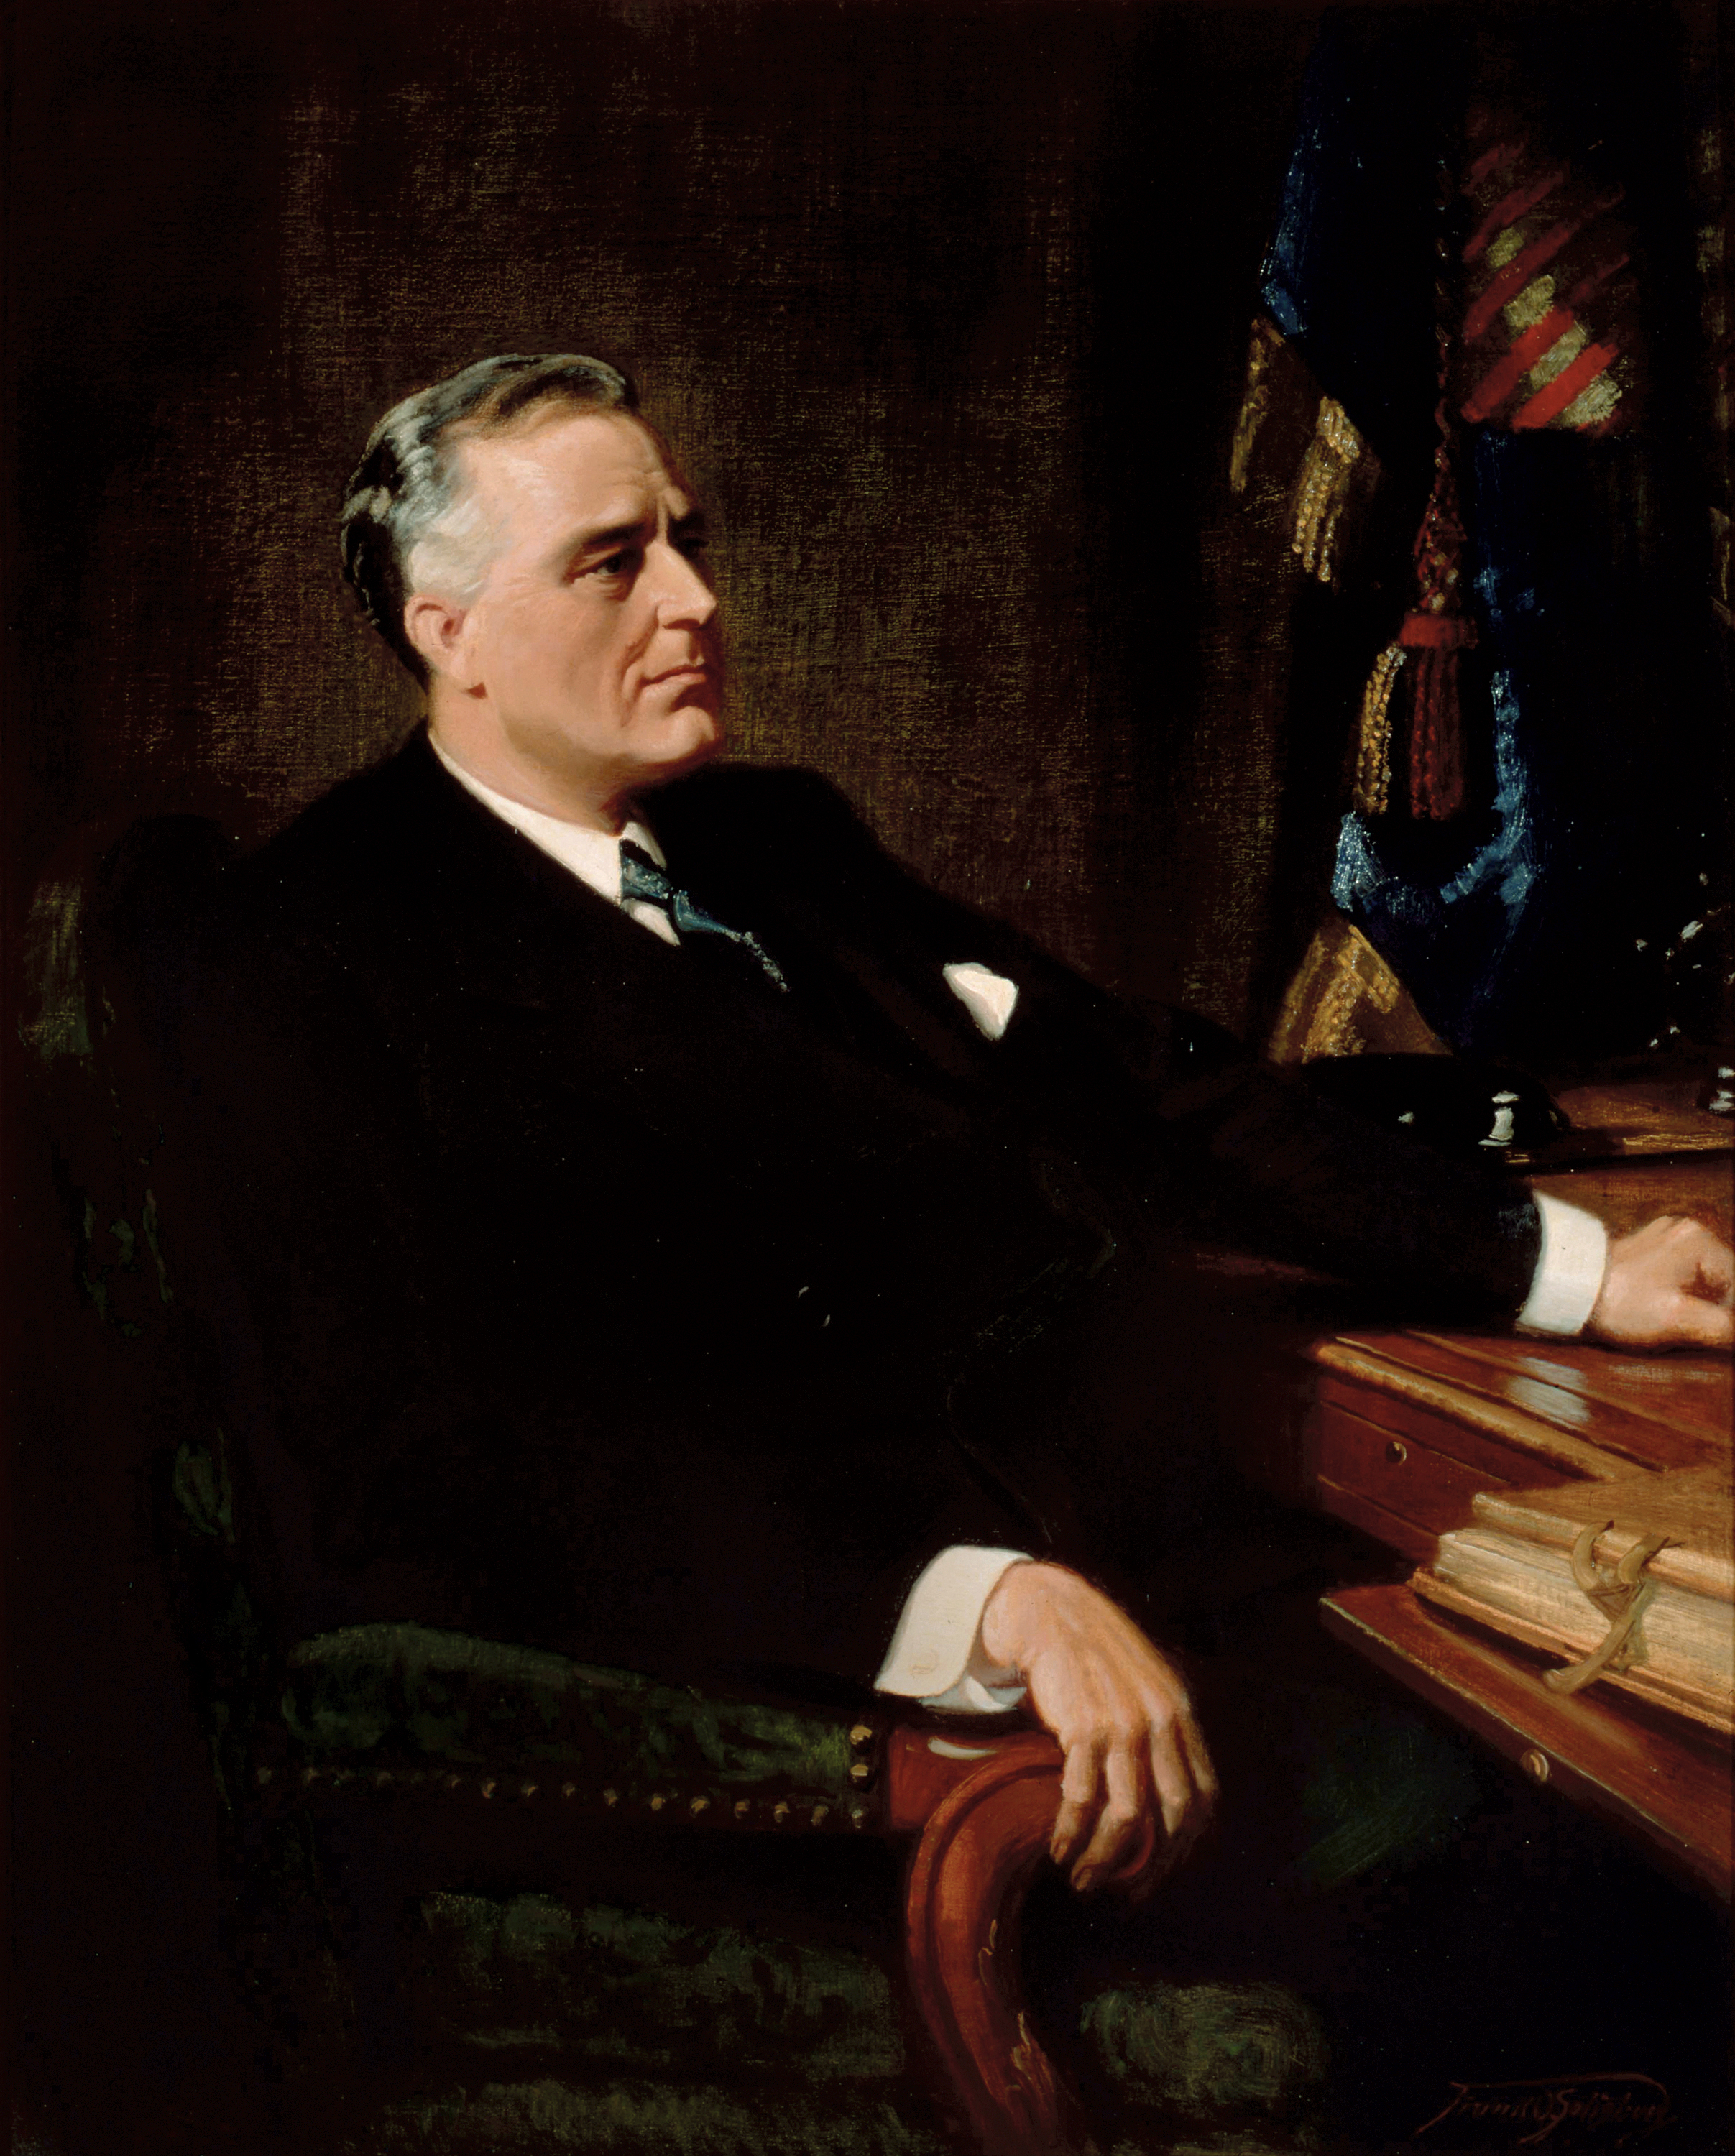 the presidency of franklin roosevelt Information about franklin d roosevelt, the 32nd president of the united states.